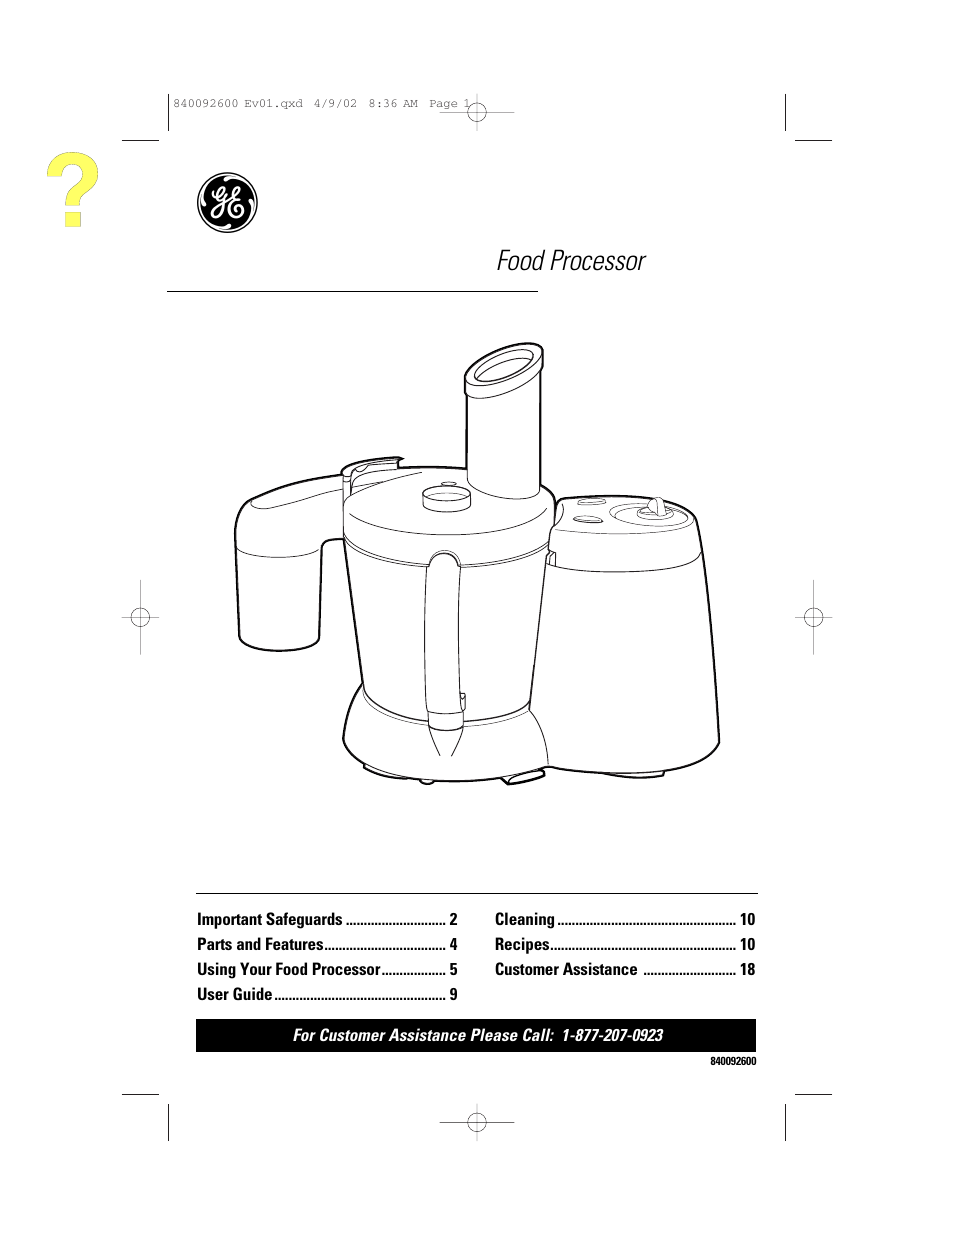 ge 840092600 user manual 36 pages also for 106740 rh manualsdir com Viking Food Processor Replacement Parts GE Variable Speed Food Processor